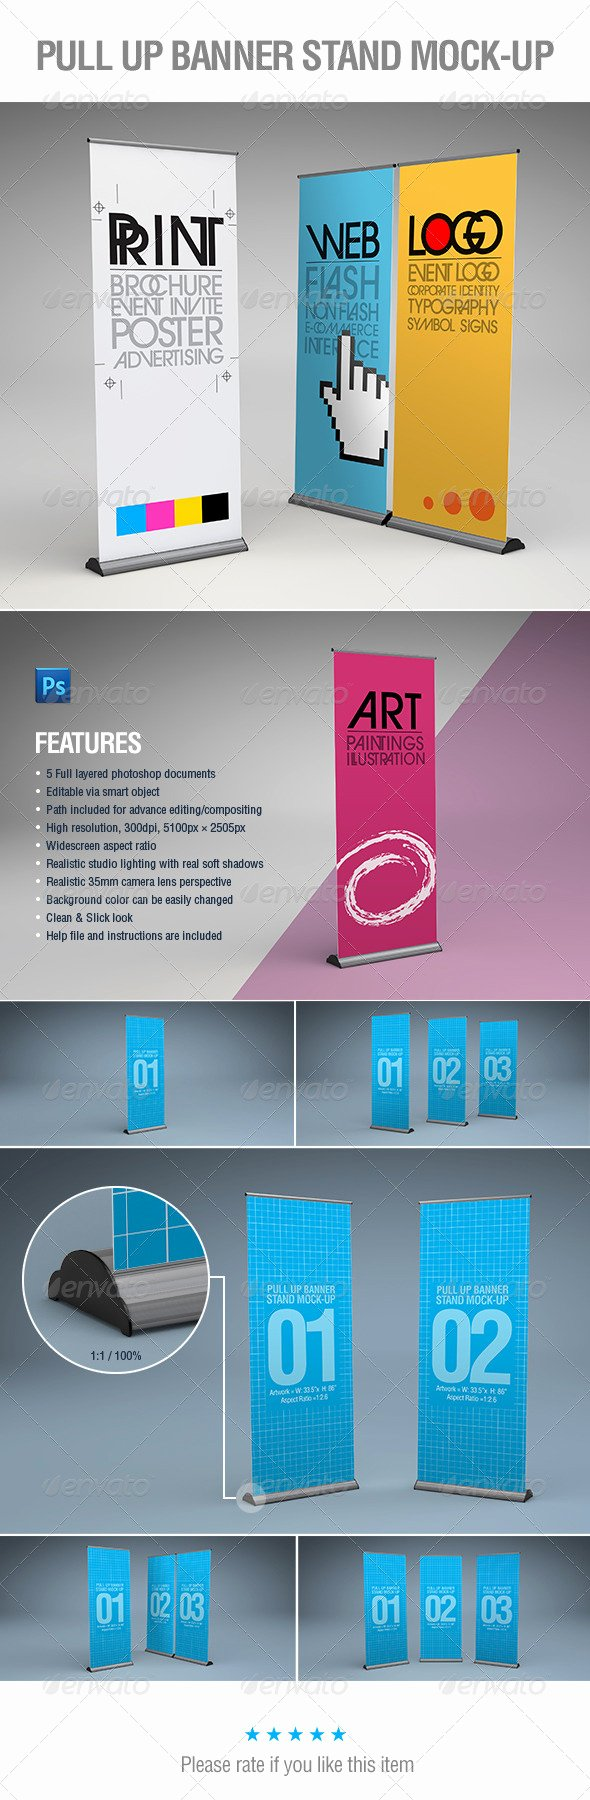 Retractable Banner Template Psd Awesome Pull Up Banner Stand Mock Up by Abelo